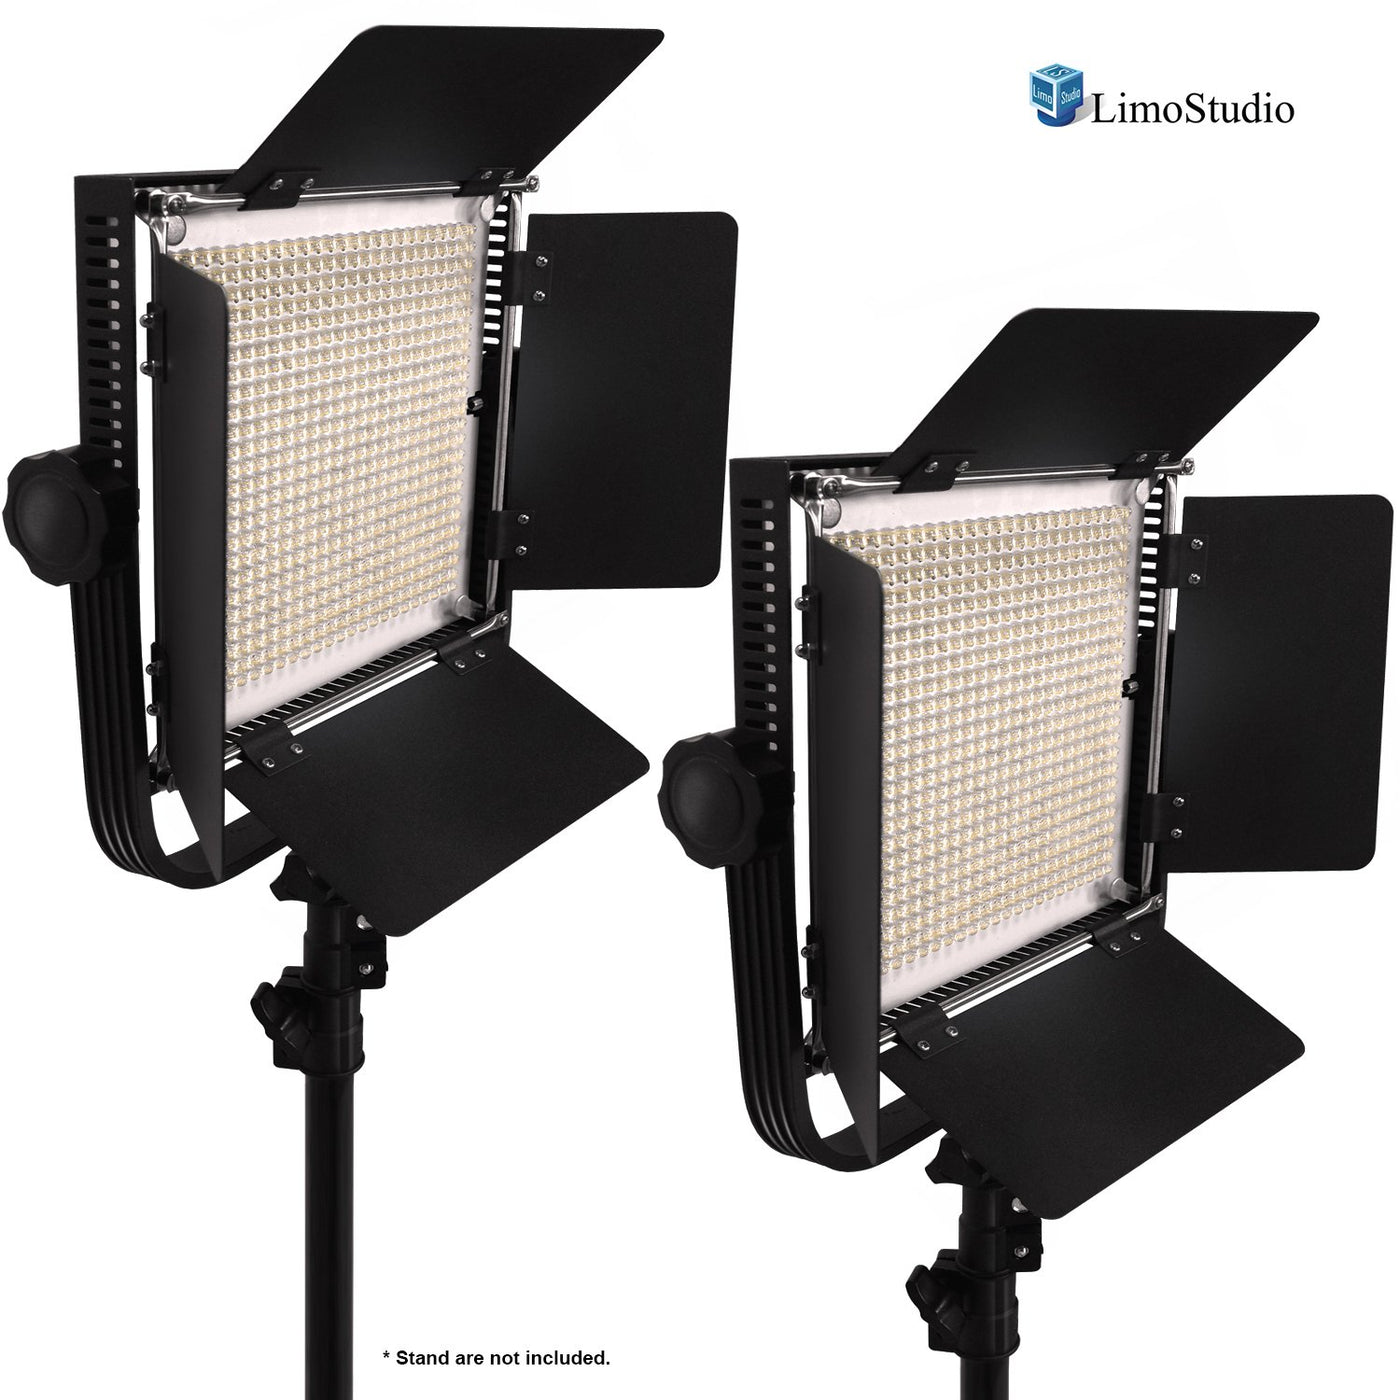 dimmable barndoor color kit shooting lighting led charger bi battery with bracket youtube rechargeable cri u and studio neewer photo light for camera product video